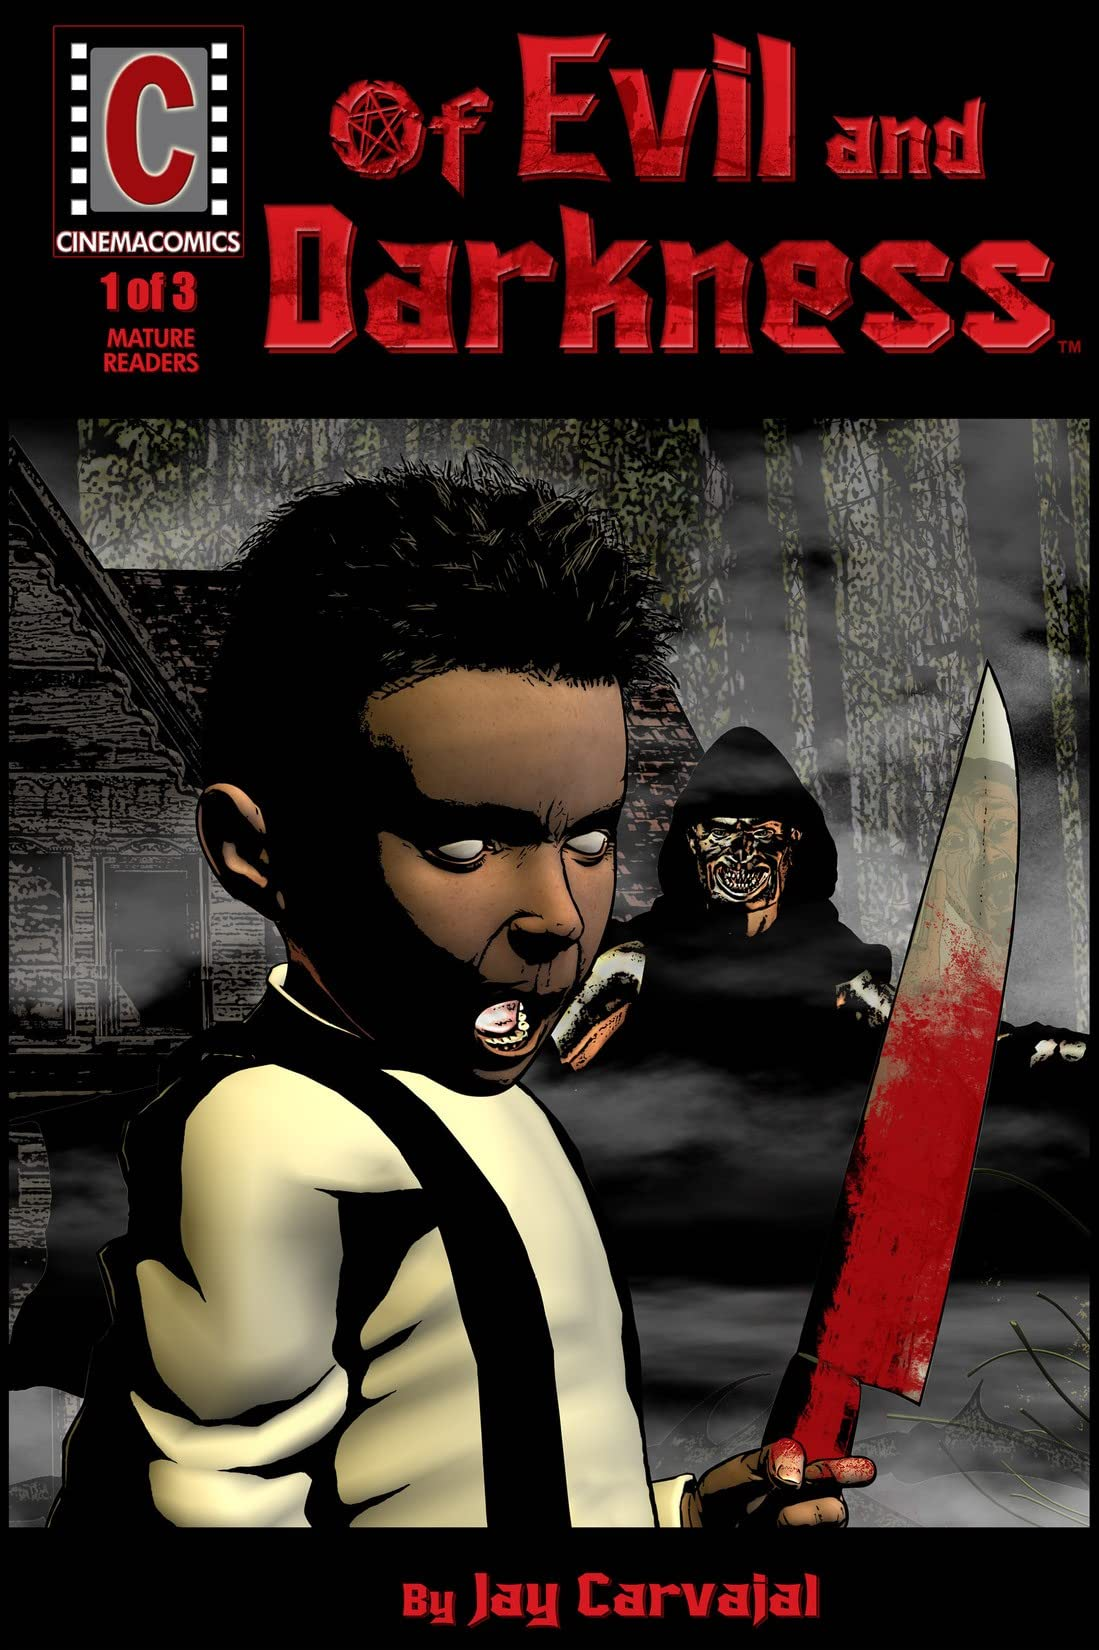 Of Evil and Darkness #1